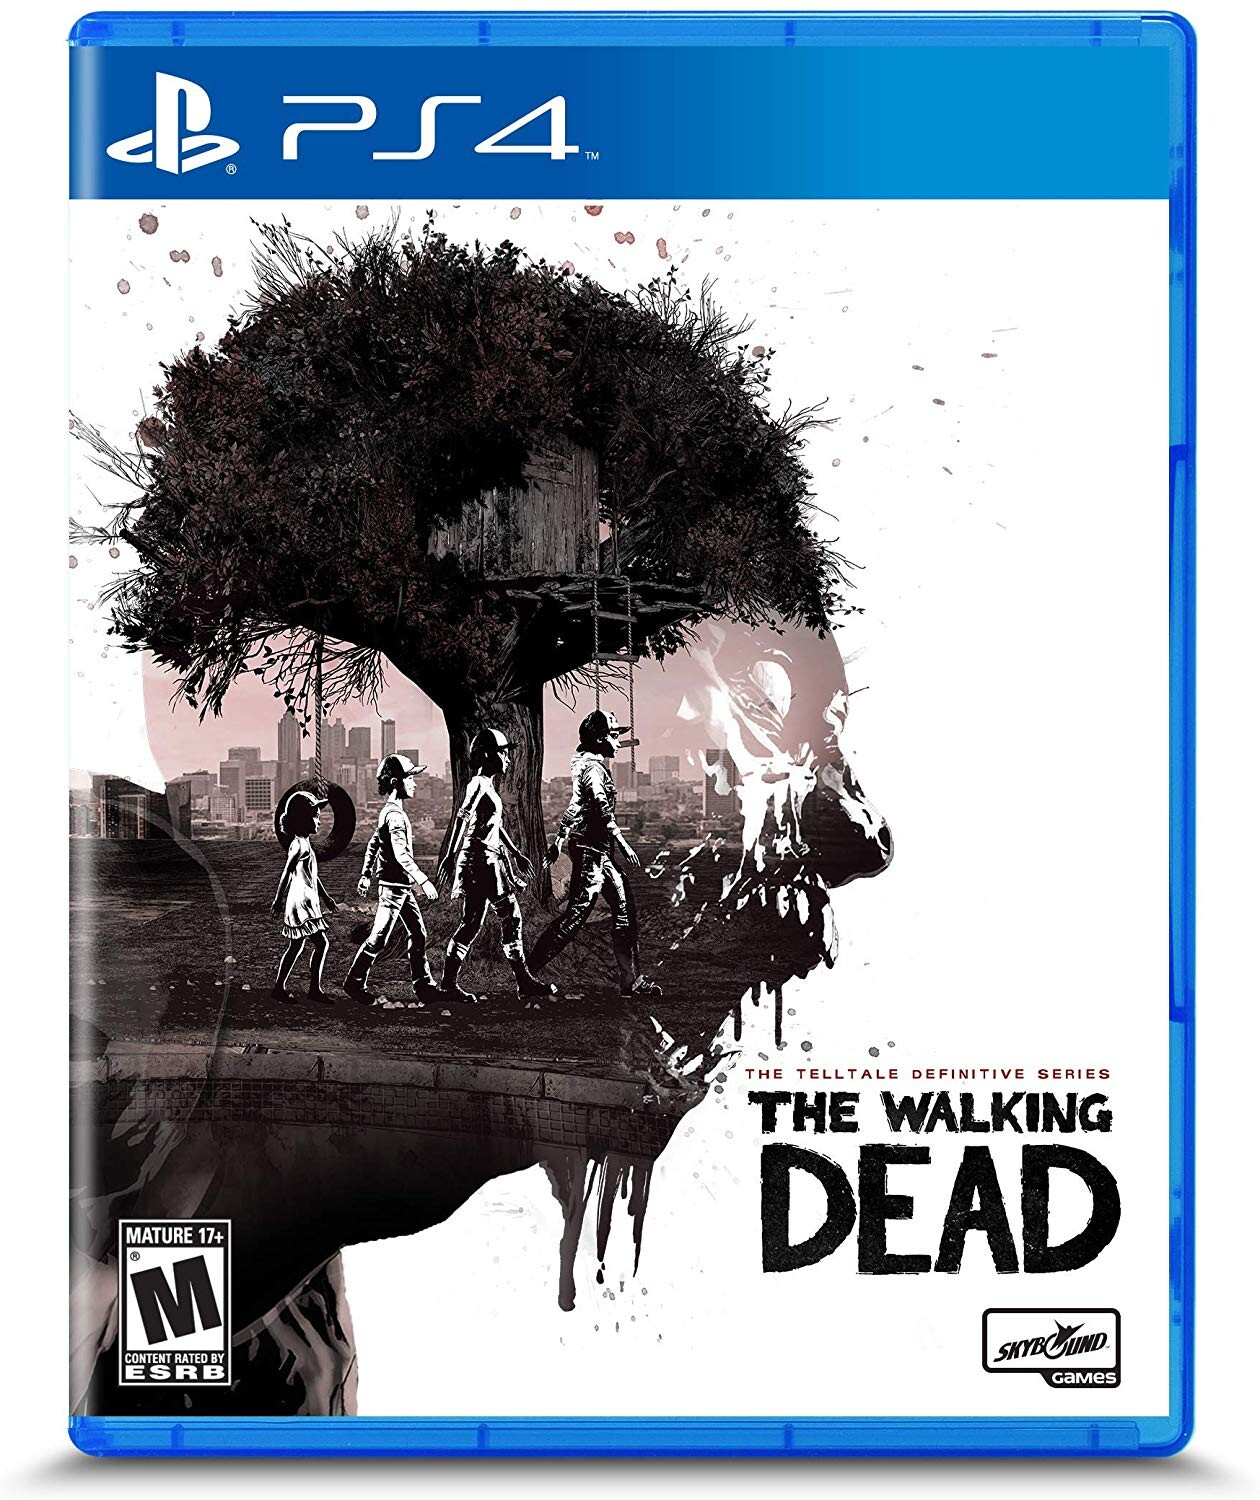 The Walking Dead: The Telltale Definitive Series (PS4 or Xbox One)